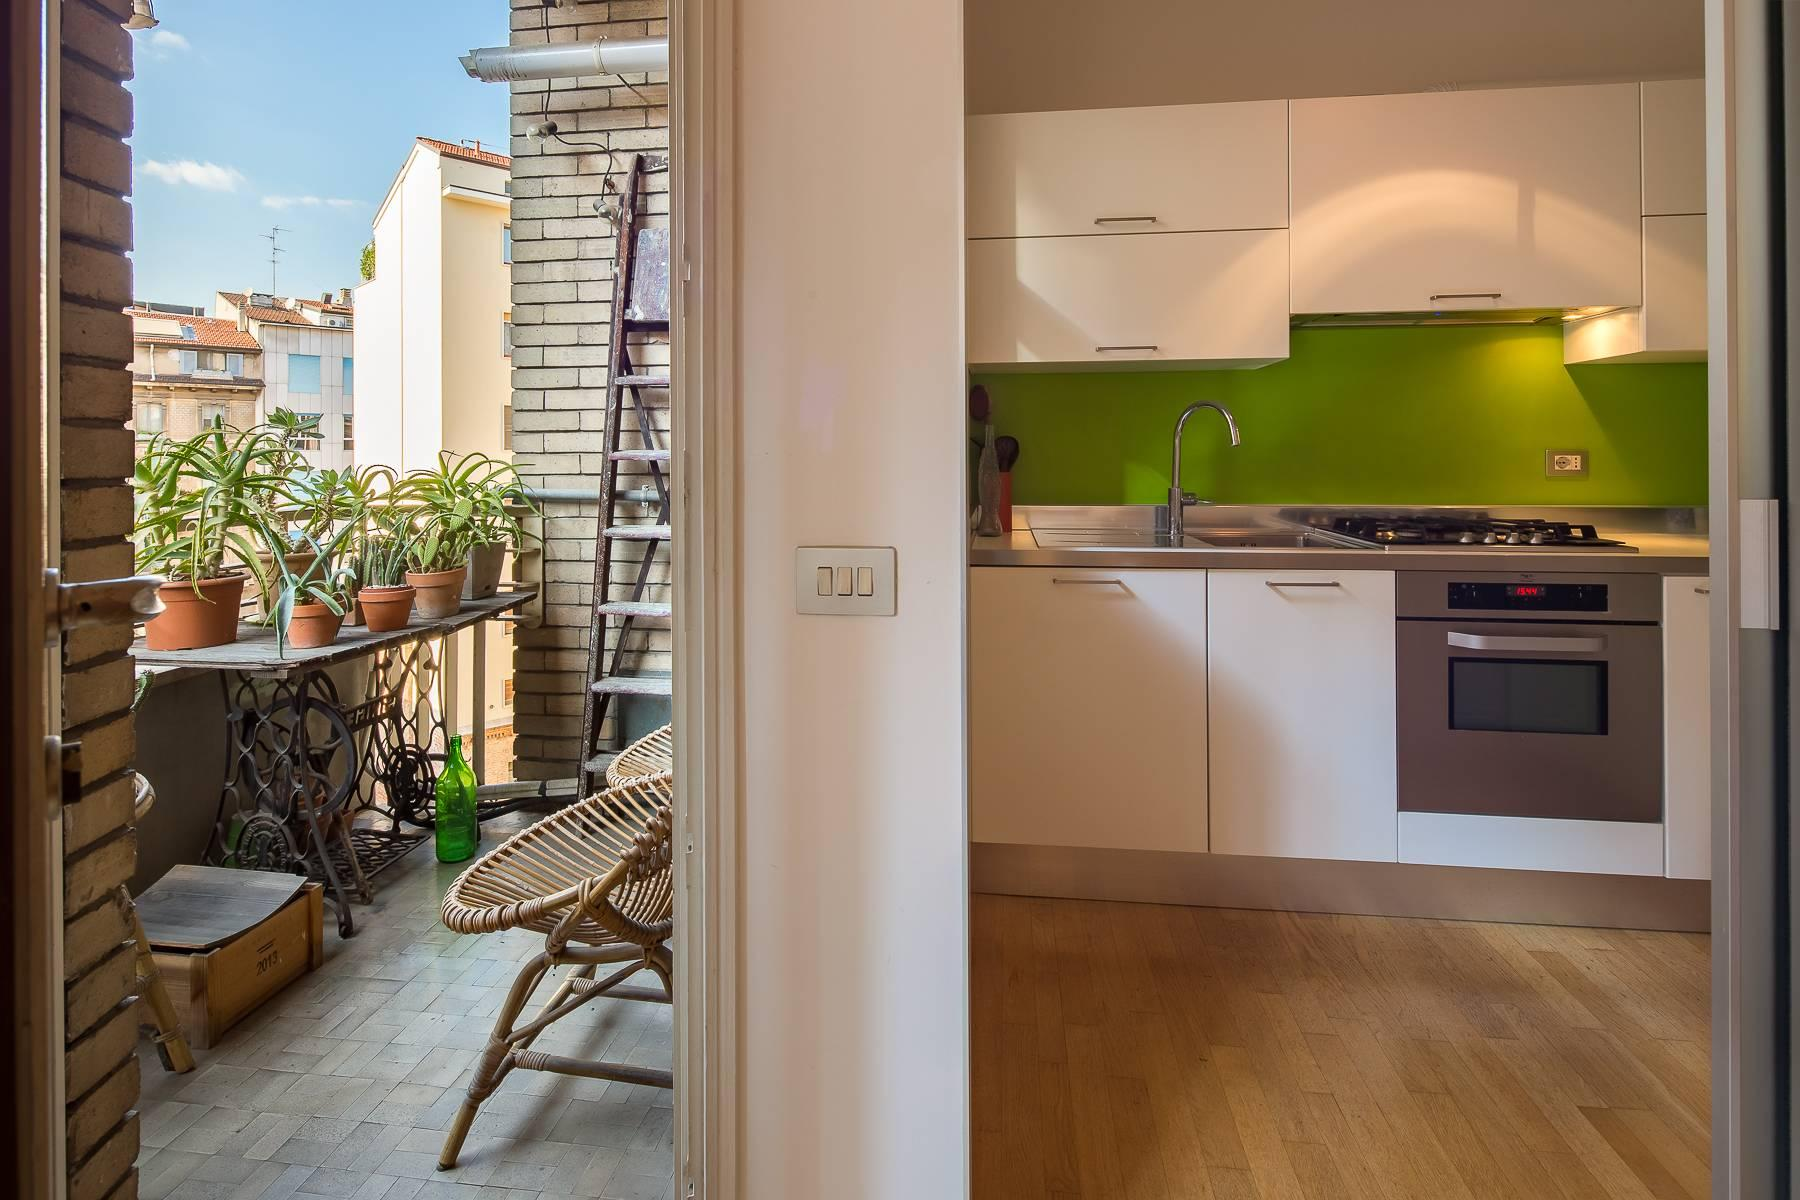 Bright, renovated two-bedroom apartment a stone's throw from the Duomo - 8